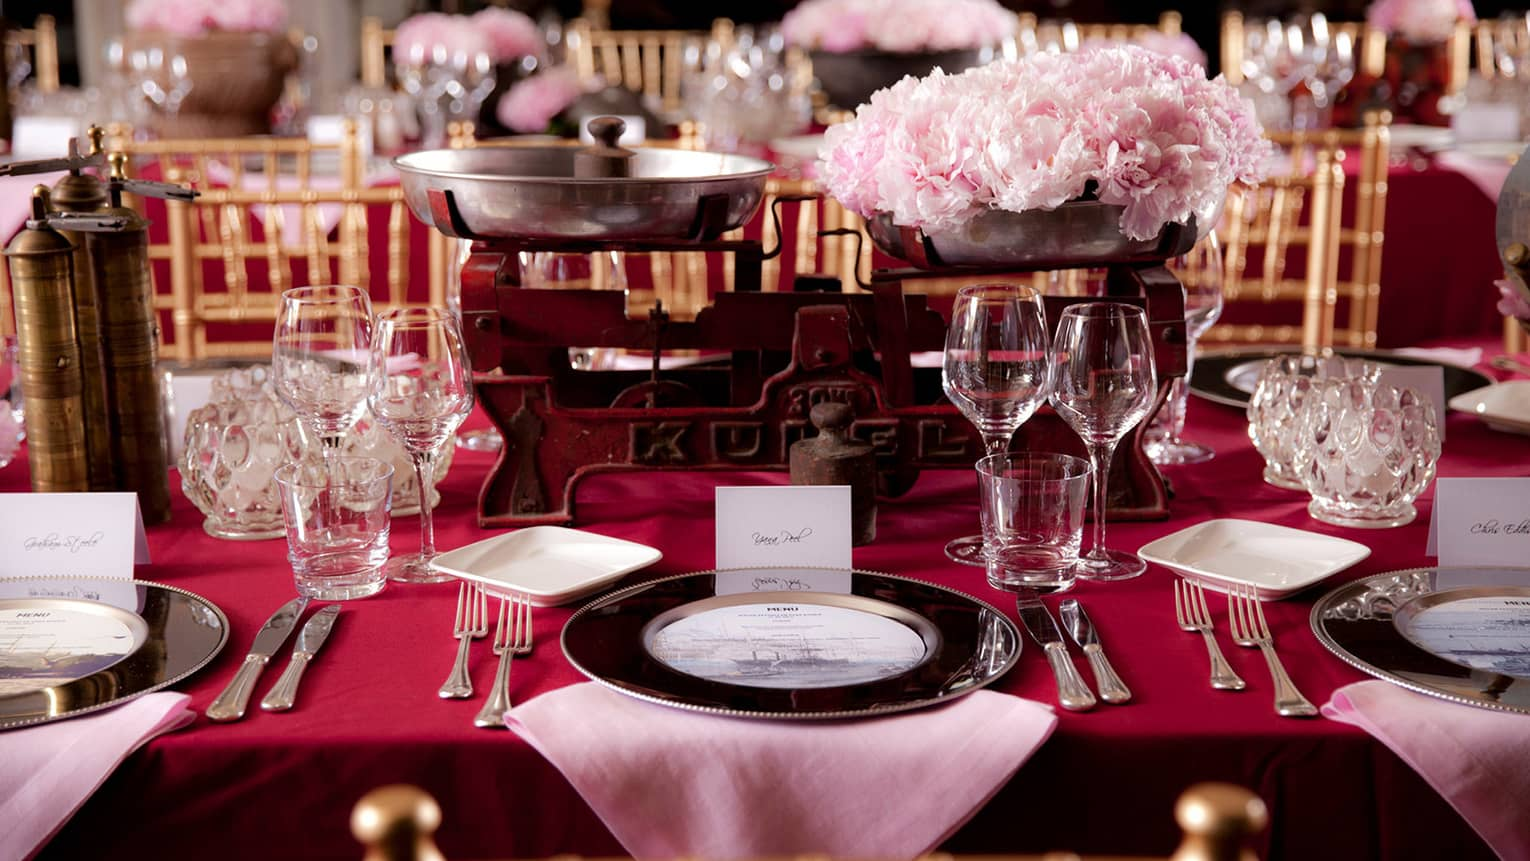 Close-up of banquet dining table with red tablecloth, pink flowers in antique iron holders